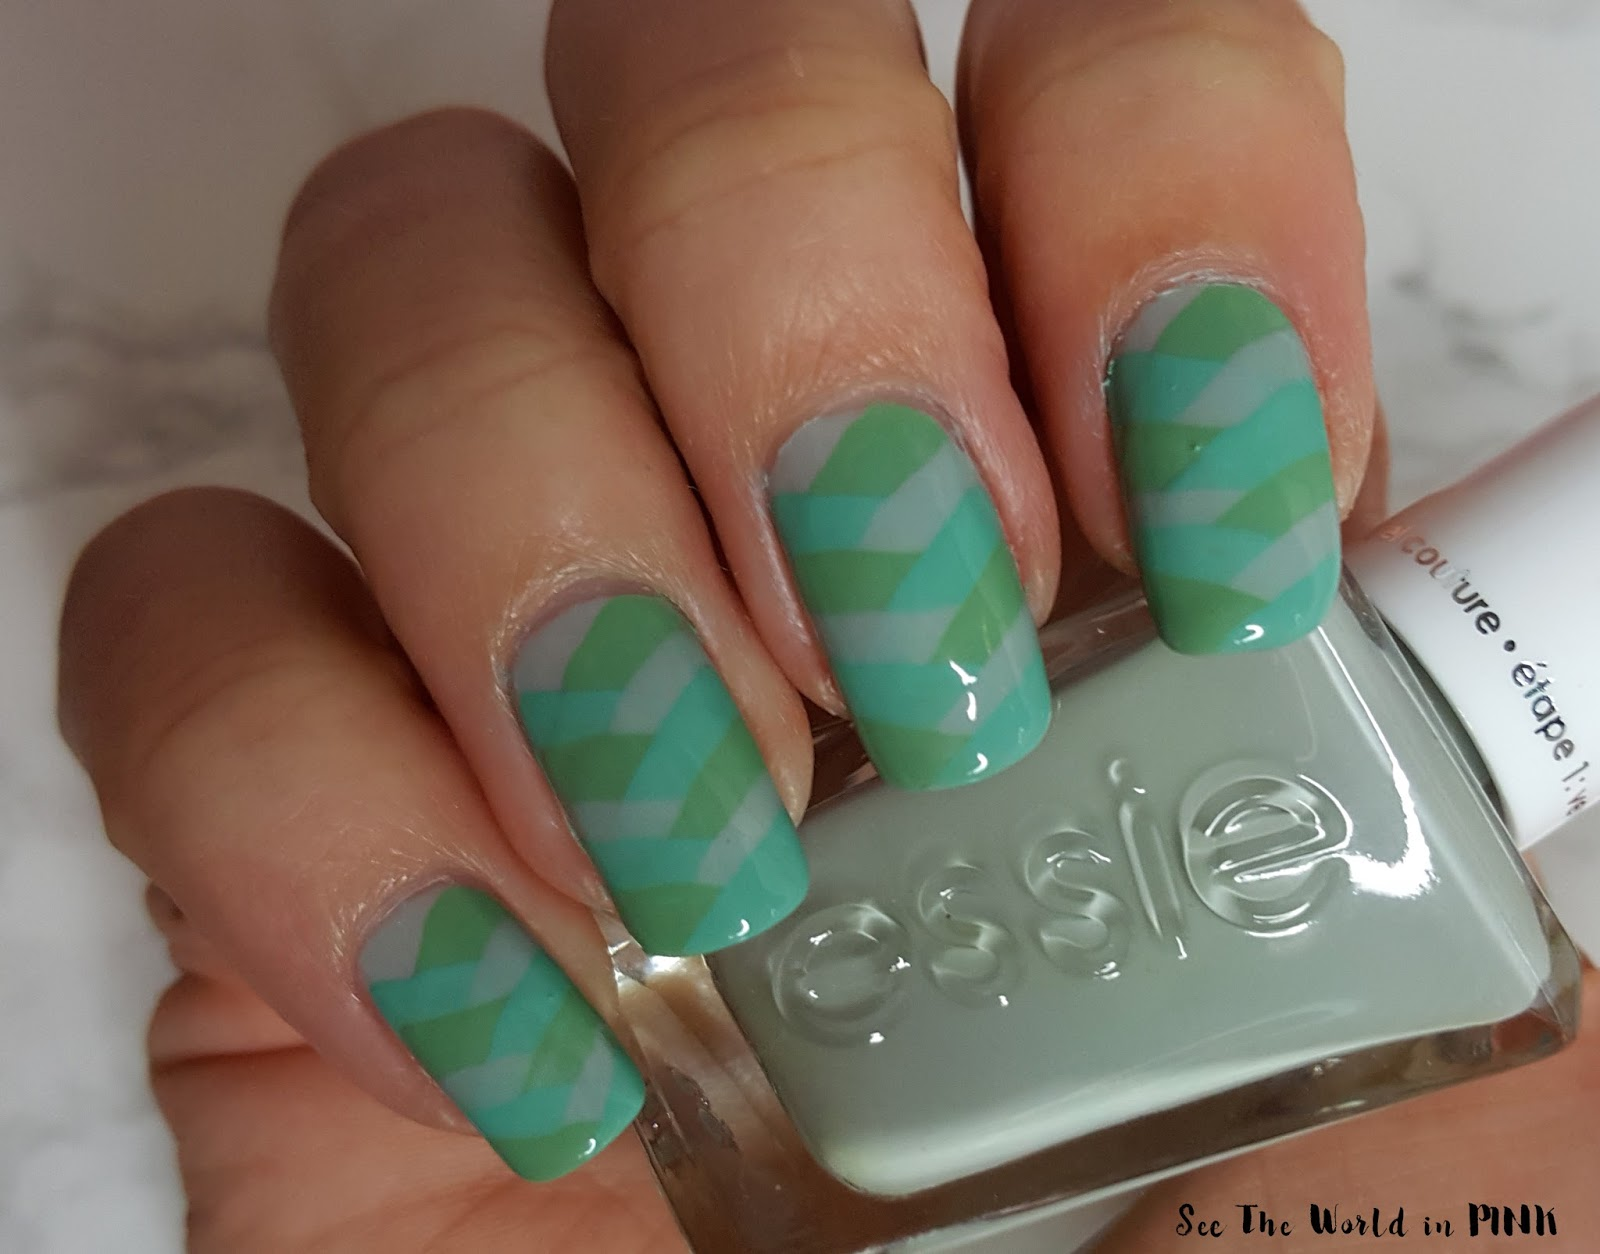 Manicure Monday - Braided Nail Art!